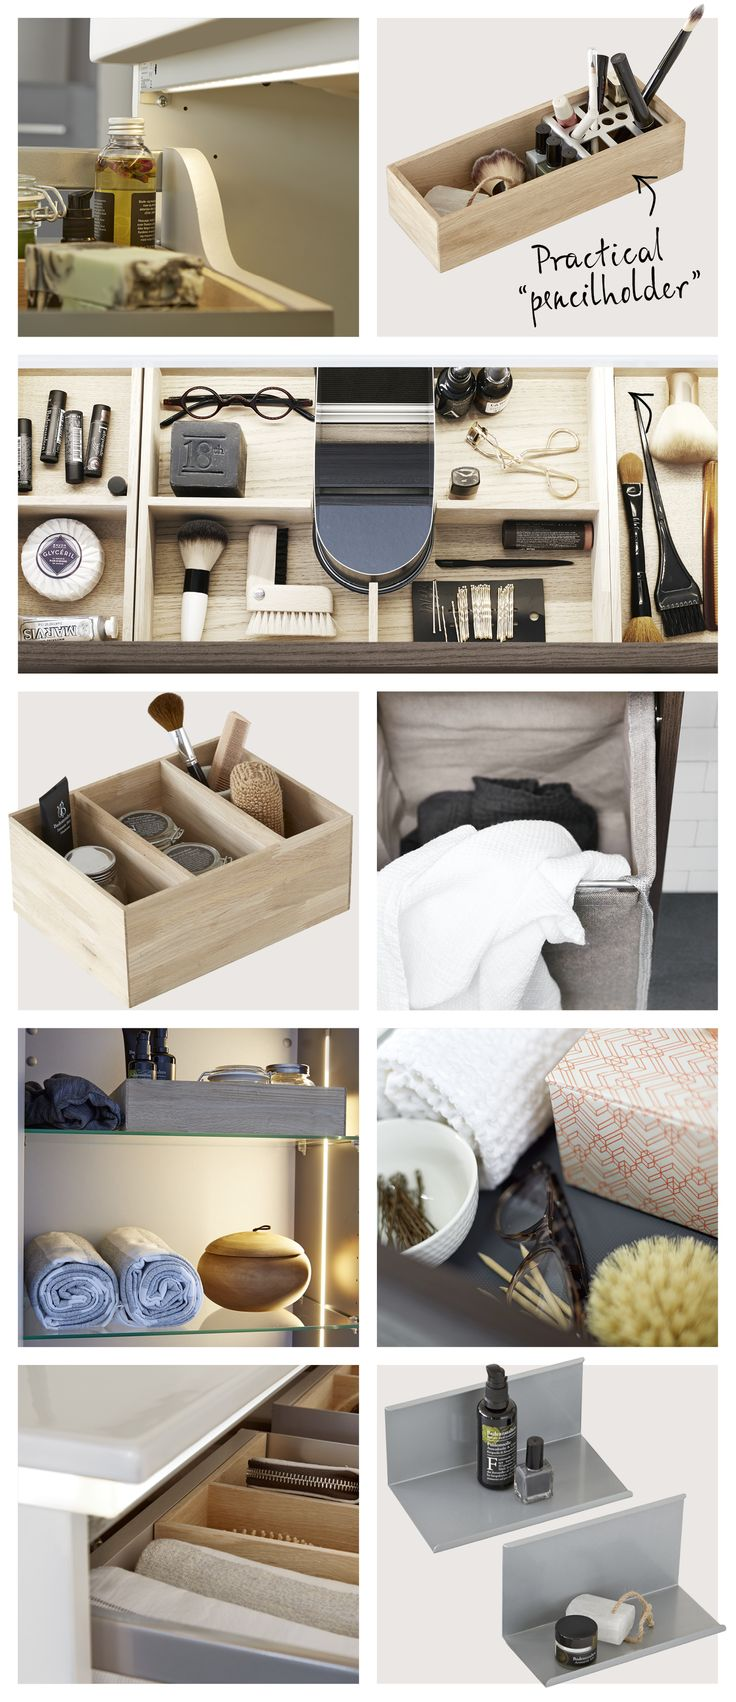 Optional accessories / Complete your furniture with stylish accessories like antislip rubber matts, solid wood oak trays and LED illumination in drawers and tall units.